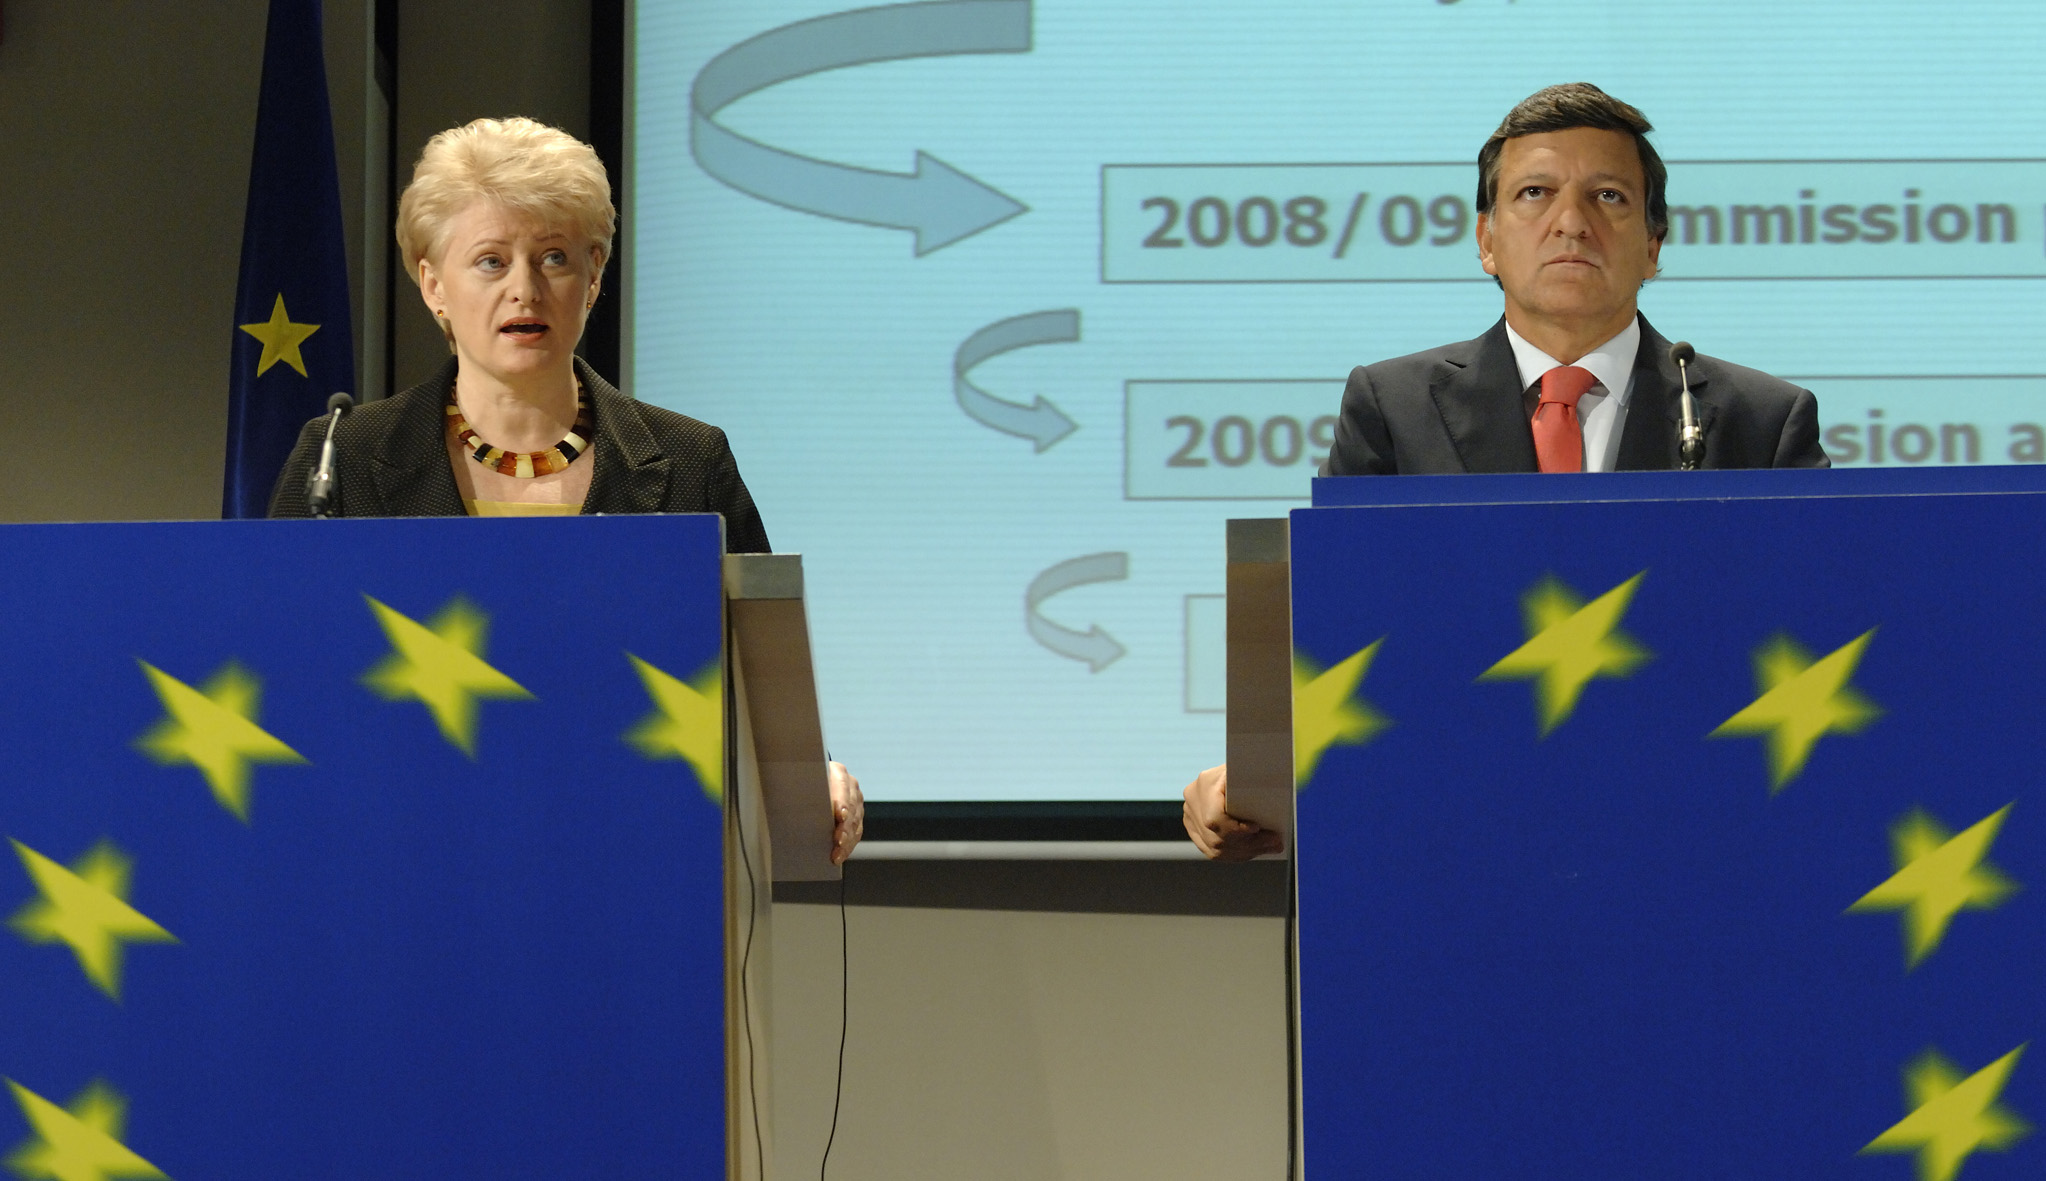 Press conference with José Manuel Barroso and Dalia Grybauskaitė on the launch of the Budget Review 2008/2009